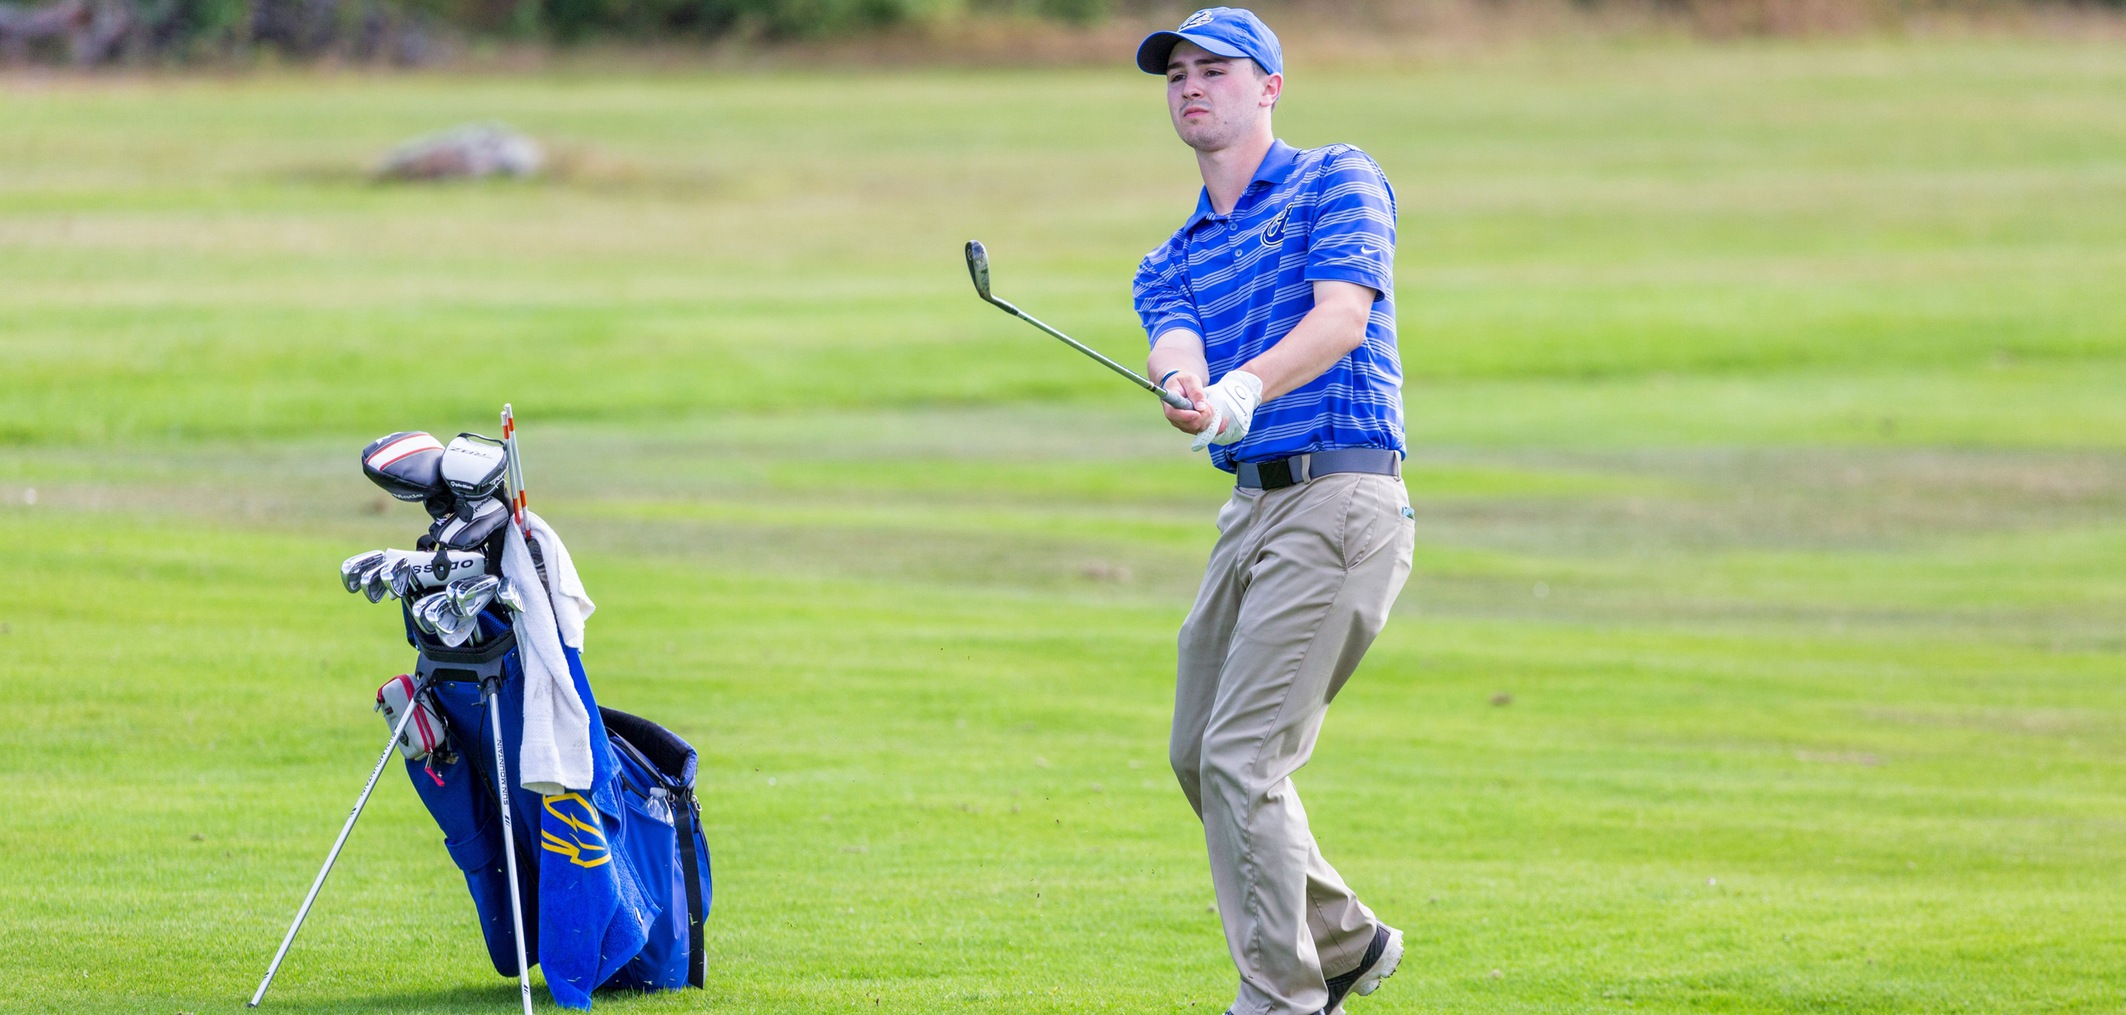 Whittemore and Ducey Lead Mariners at John Queenan Memorial